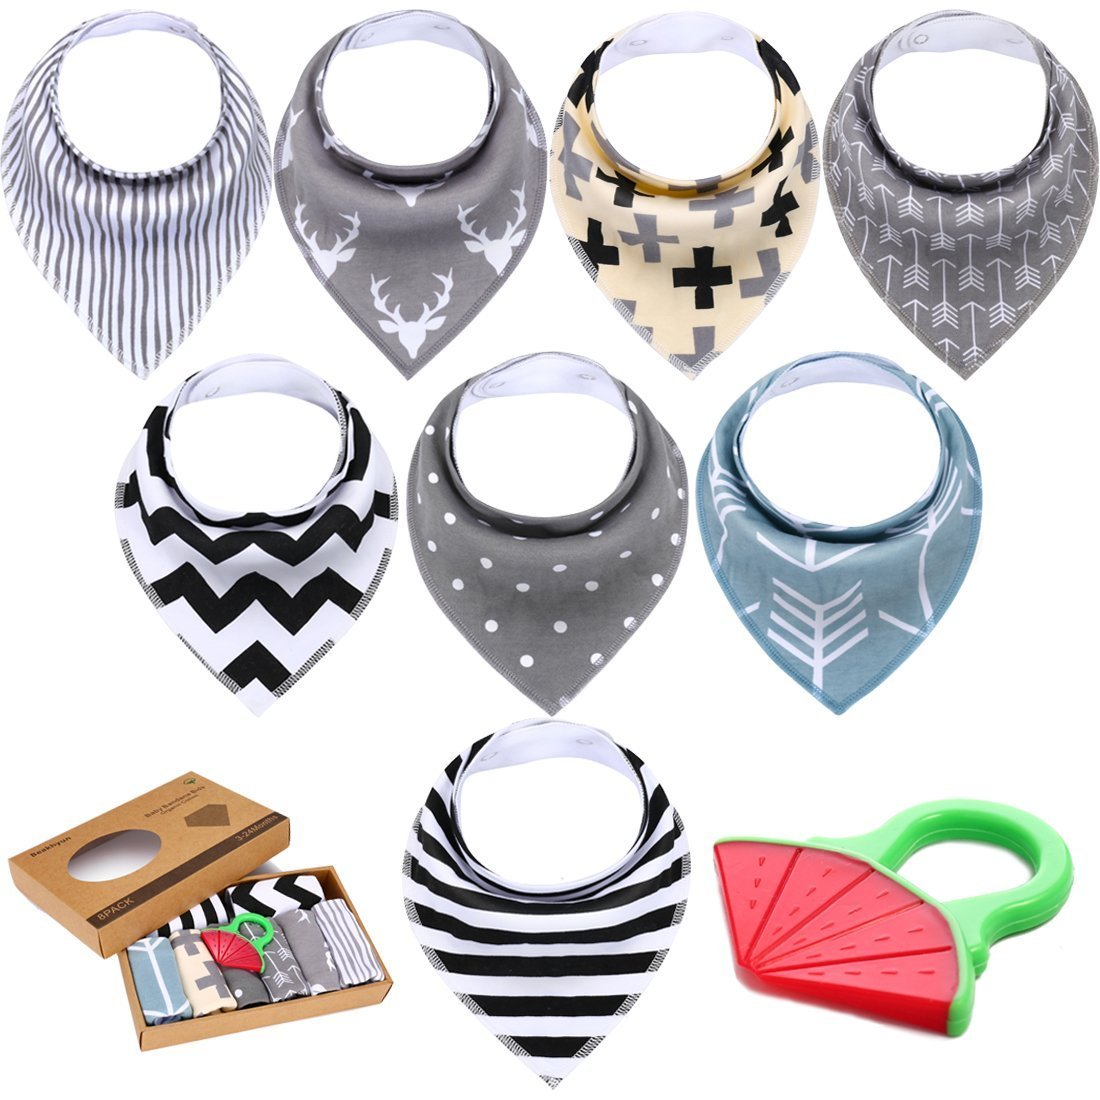 8-Pack Baby Bandana Drooling Bib Set - Super Absorbent, Soft, Chic Organic Drool Bibs with Free Baby Teether For Boys & Girls By Beakhyun